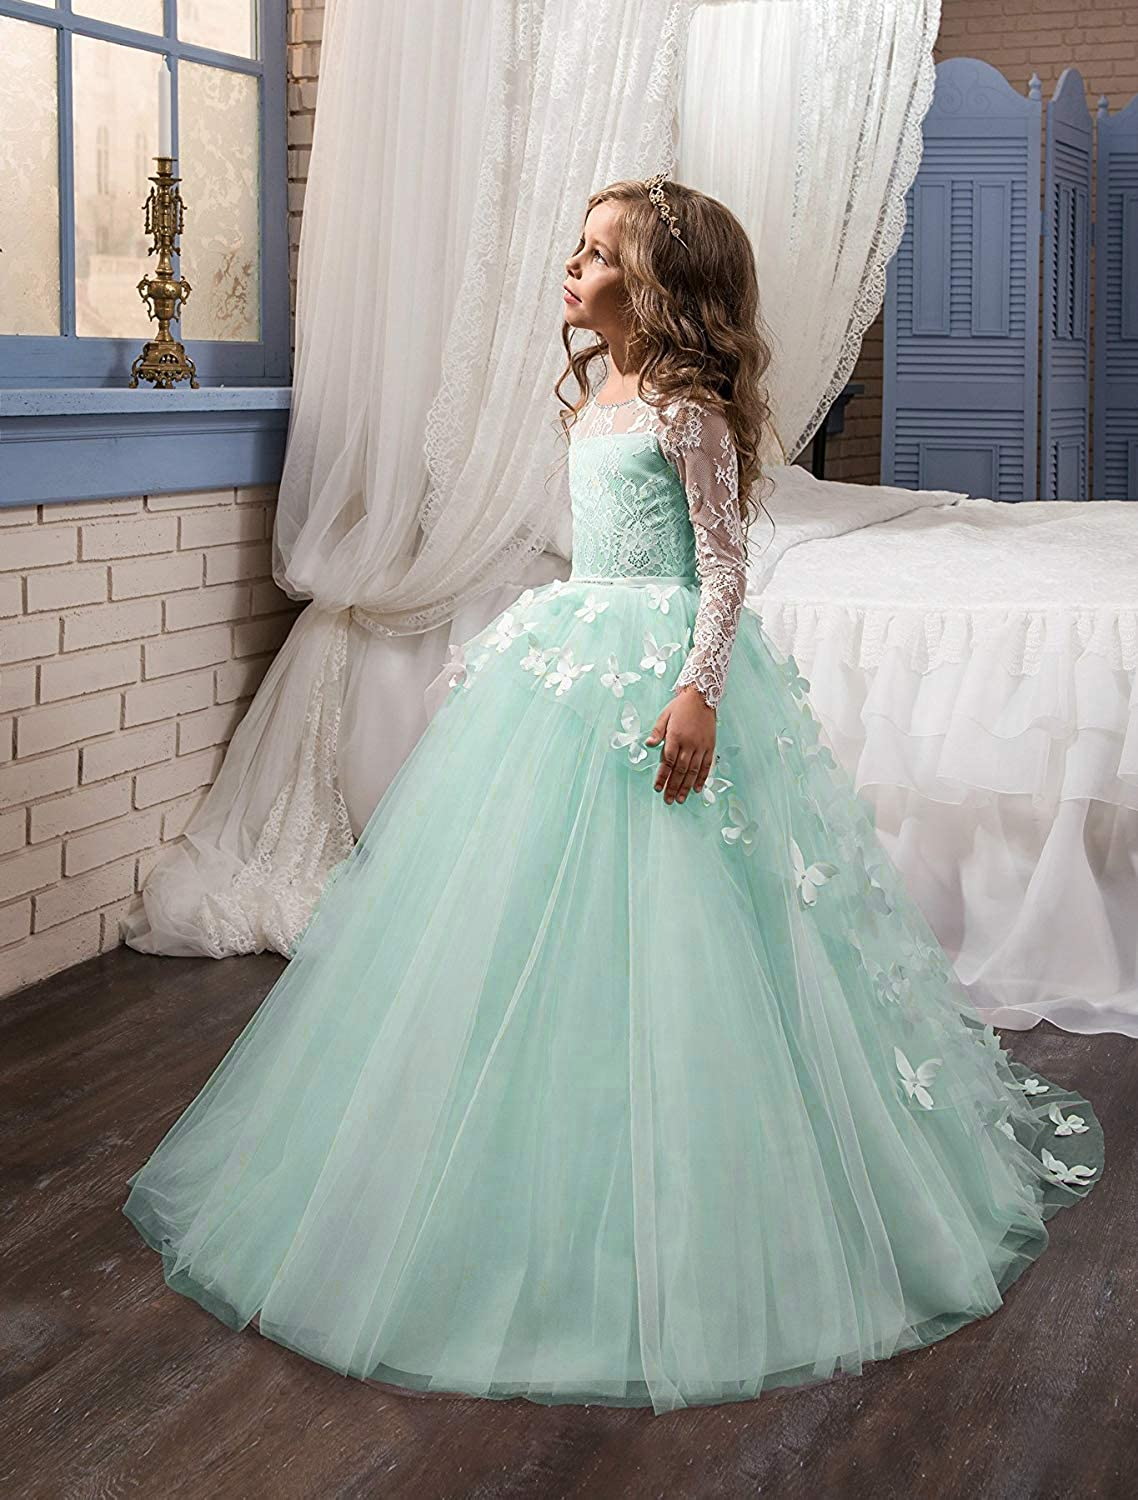 Abaowedding Lovely Flower Girl Dress Lace Long Sleeves Prom Gown